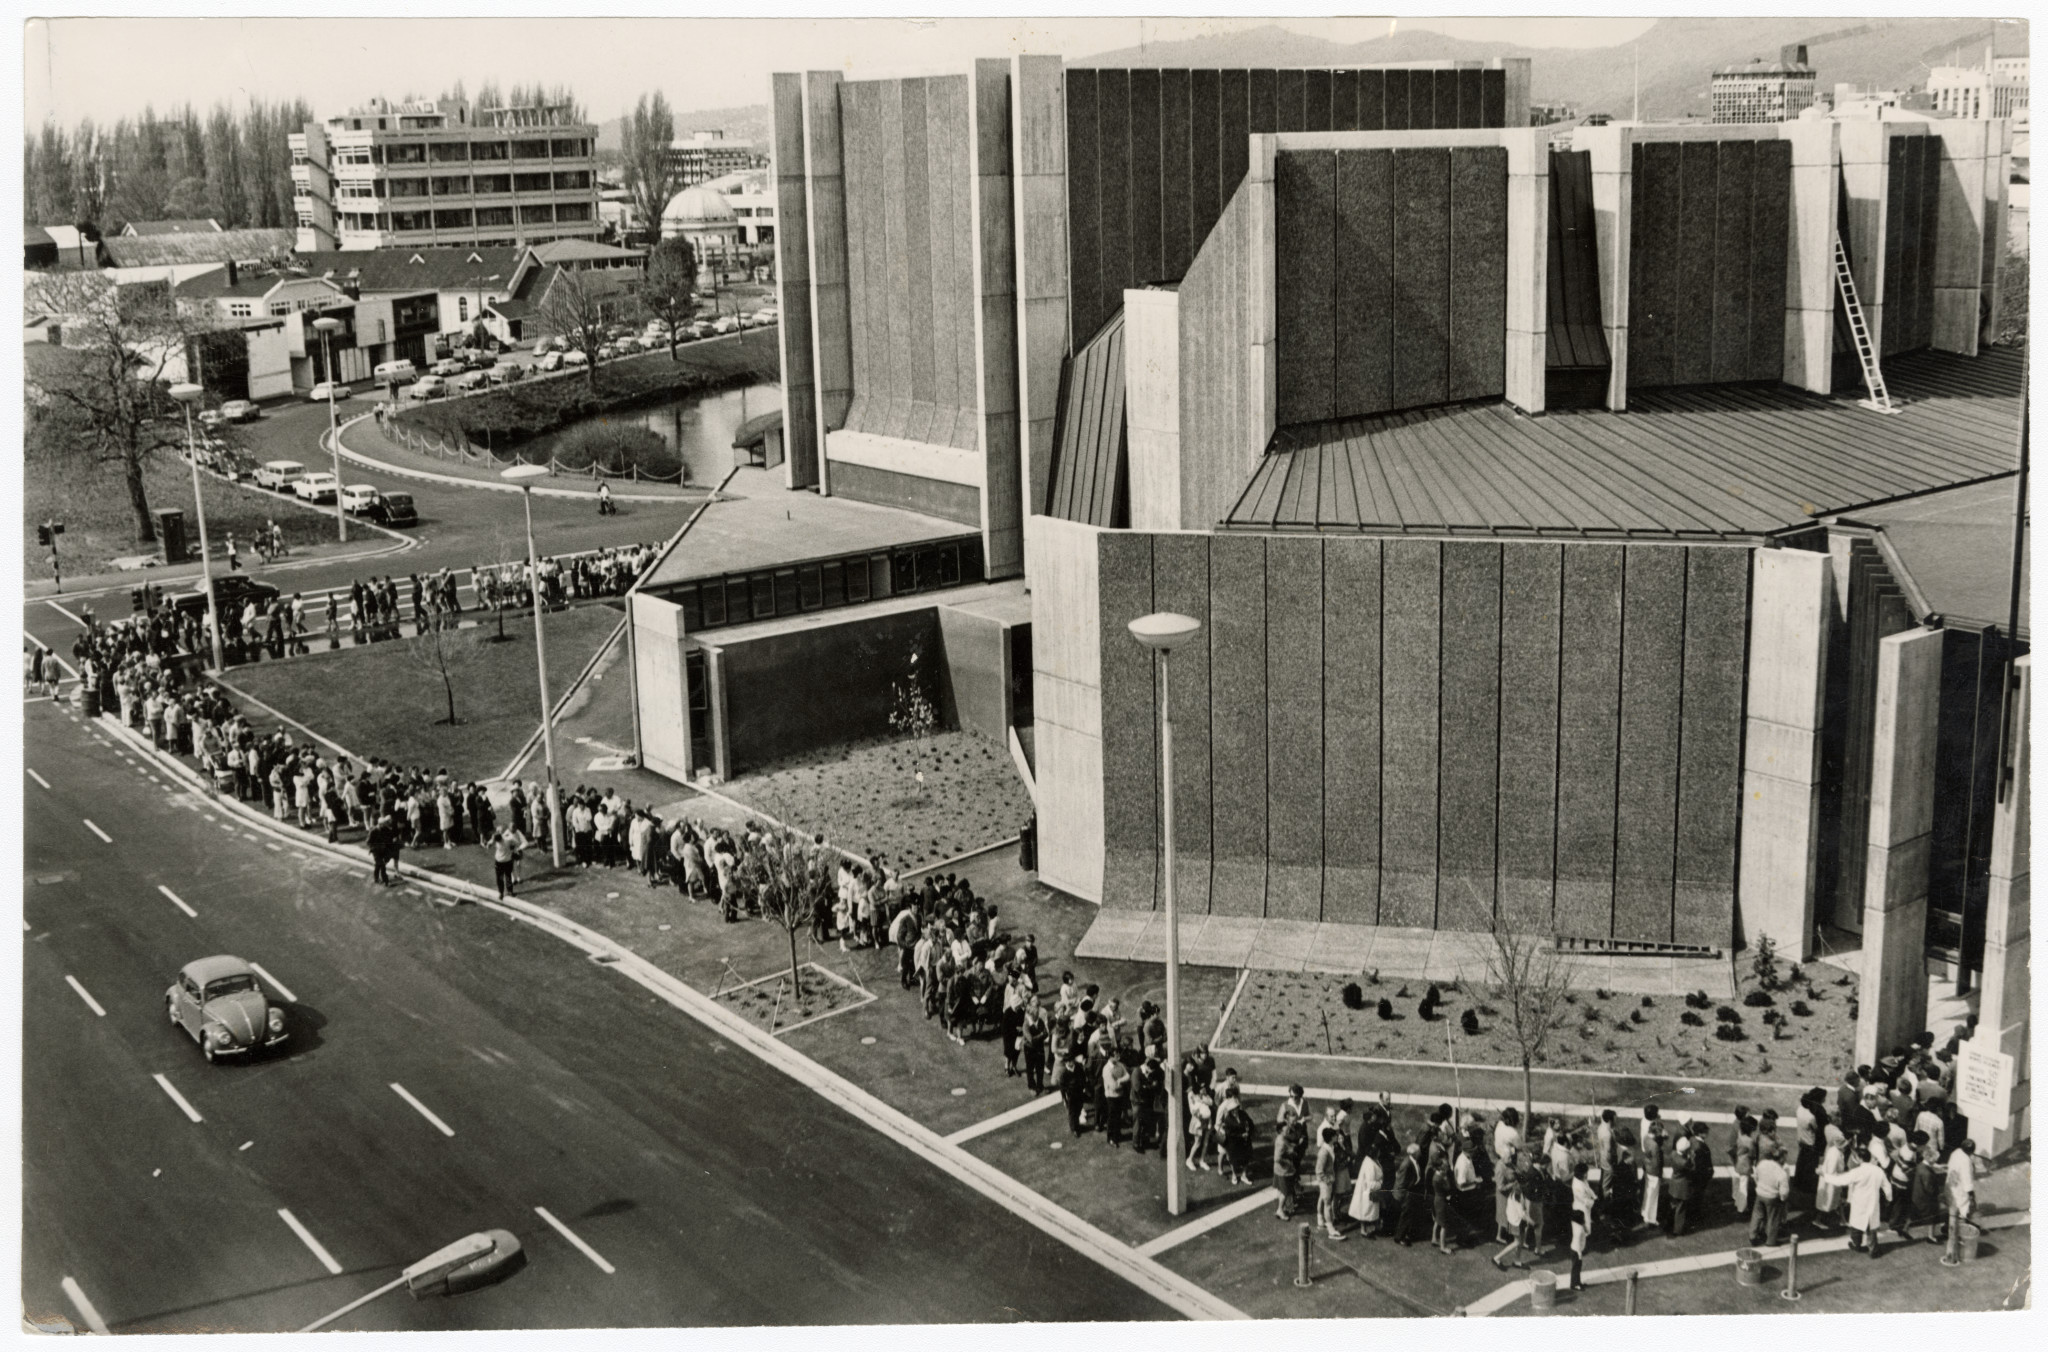 Opening of the new Town Halll. 25 September 1972. Christchurch Star archive. In copyright. CCL-StarP-02779A